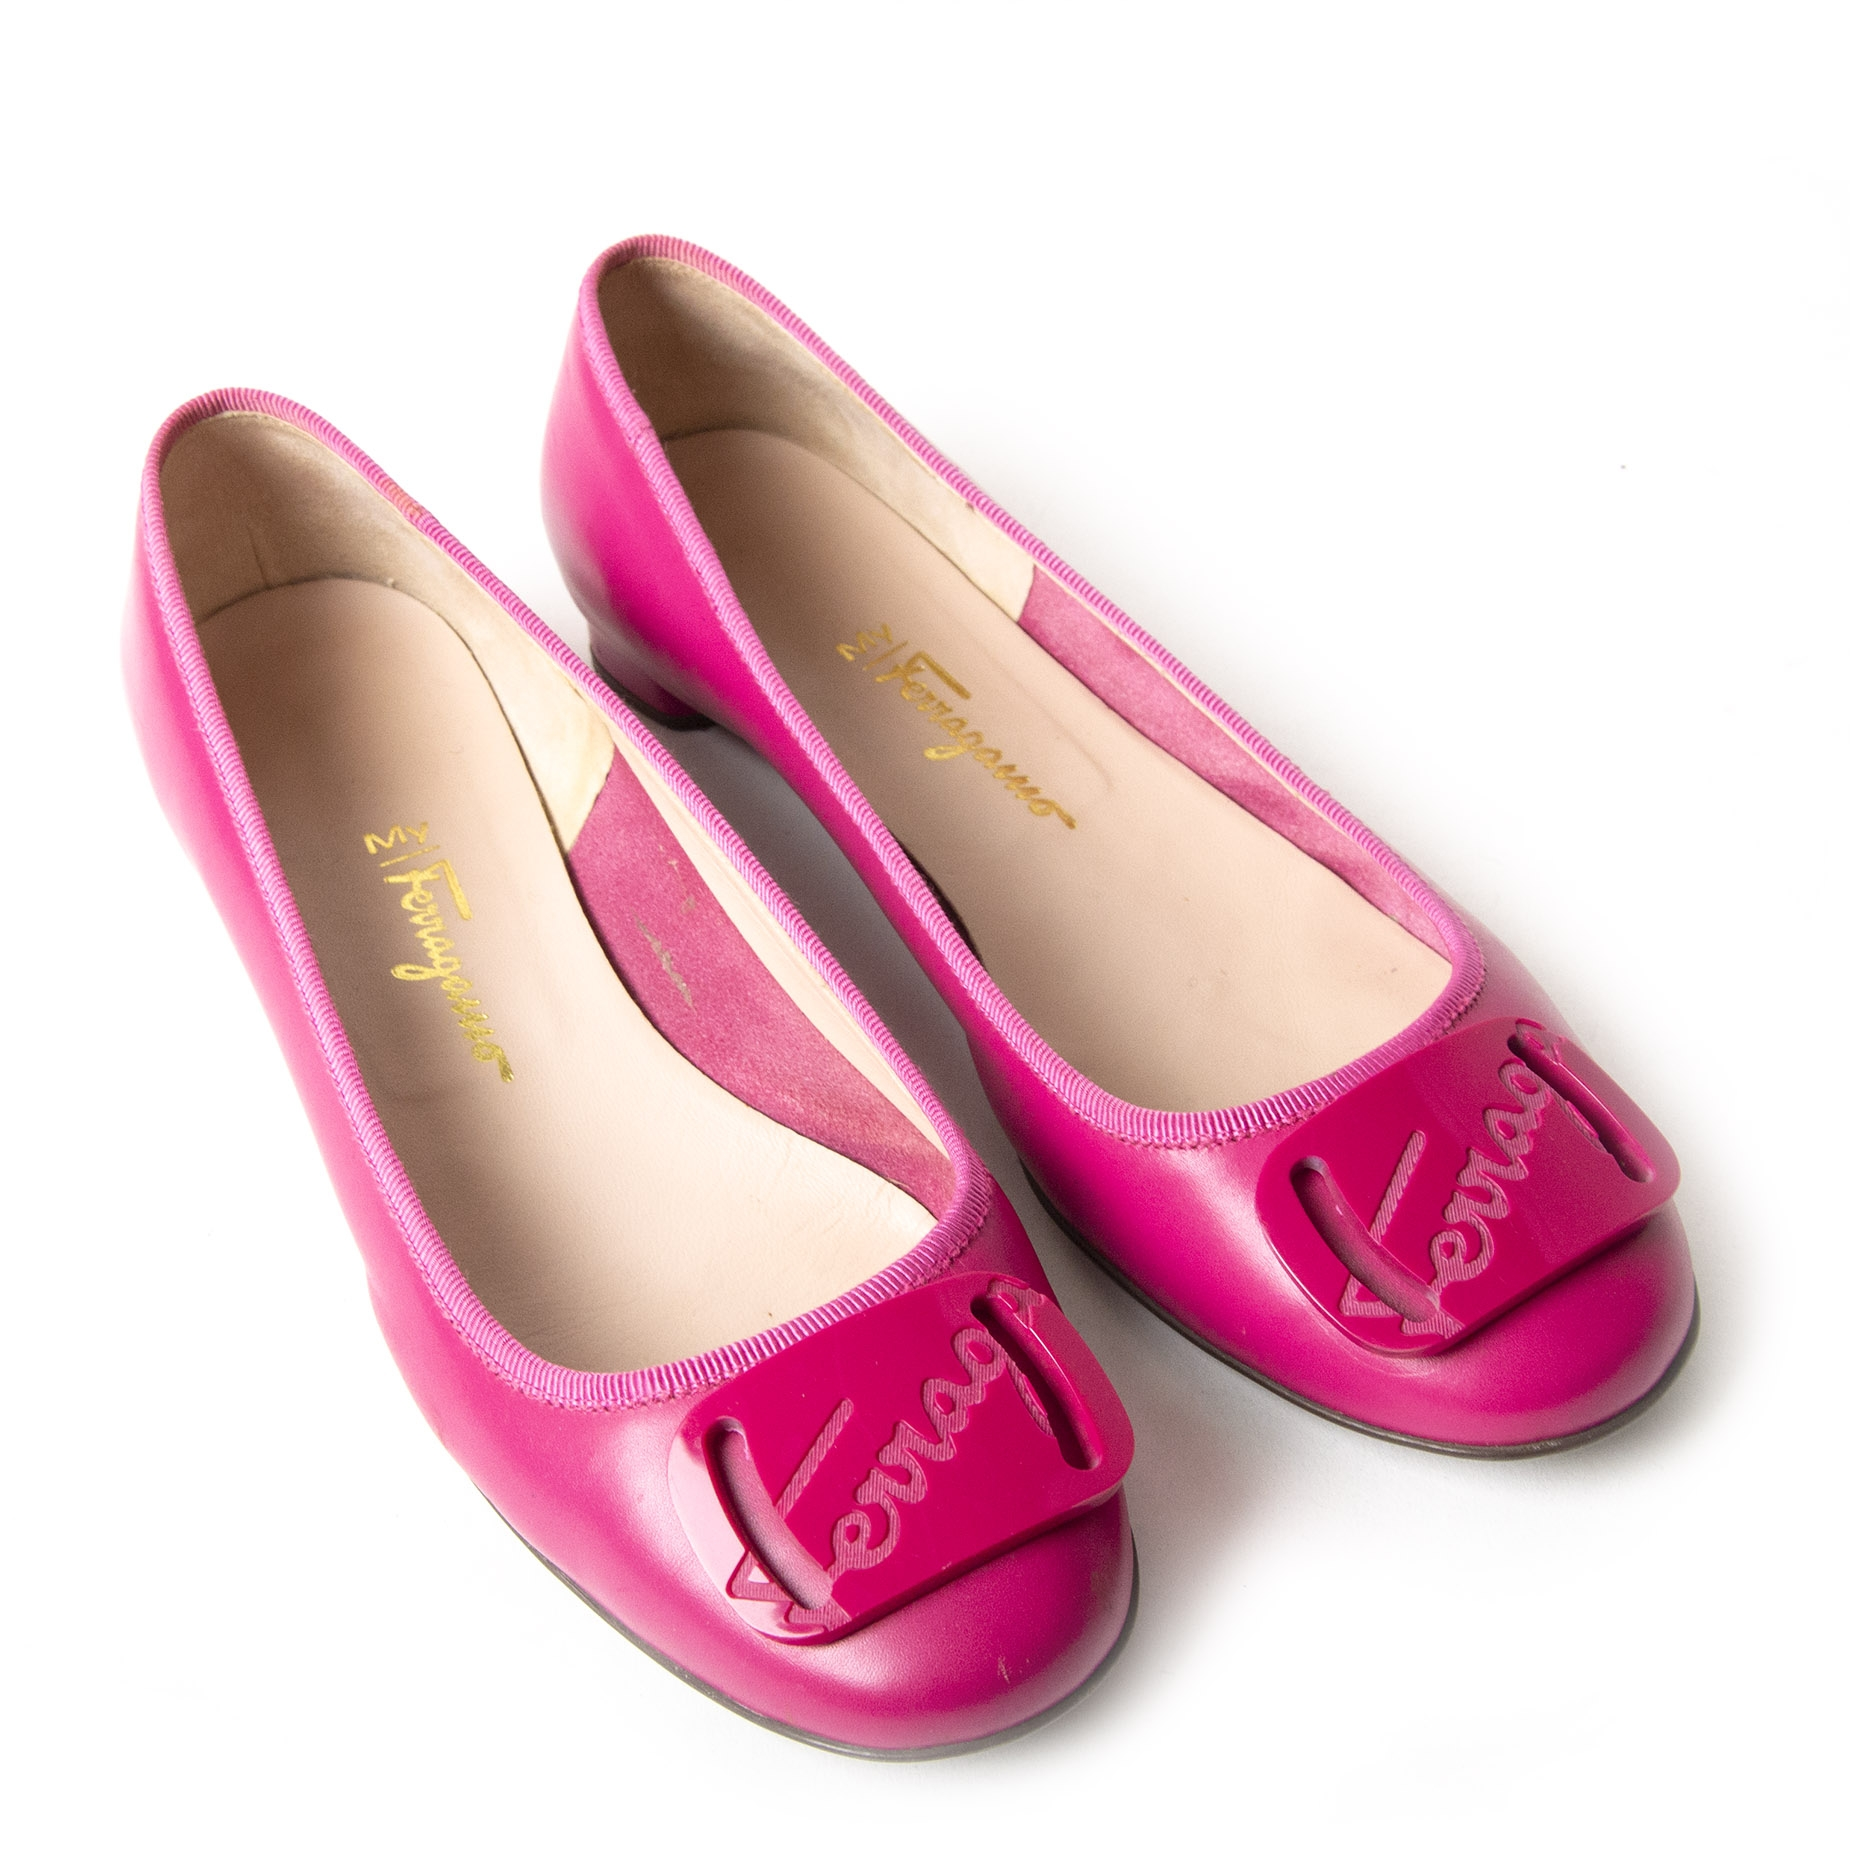 Authentic second-hand vintage Ferragamo My Charm Ballet Flats buy online webshop LabelLOV